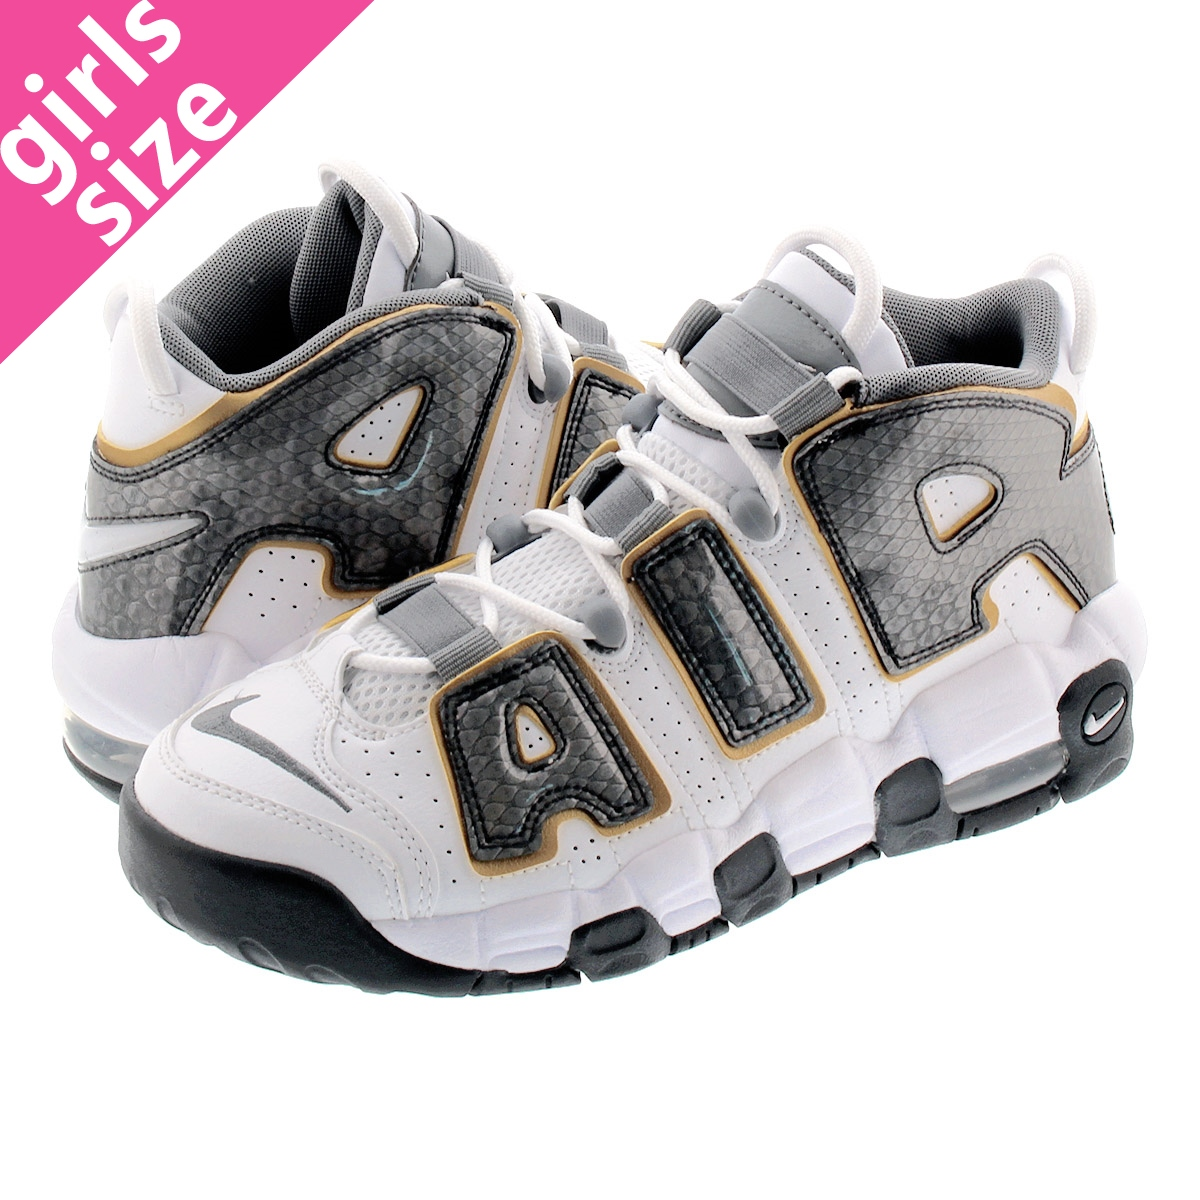 NIKE AIR MORE UPTEMPO GS ナイキ モア アップ テンポ GS WHITE/ANTHRACITE/METALLIC GOLD cq4583-100